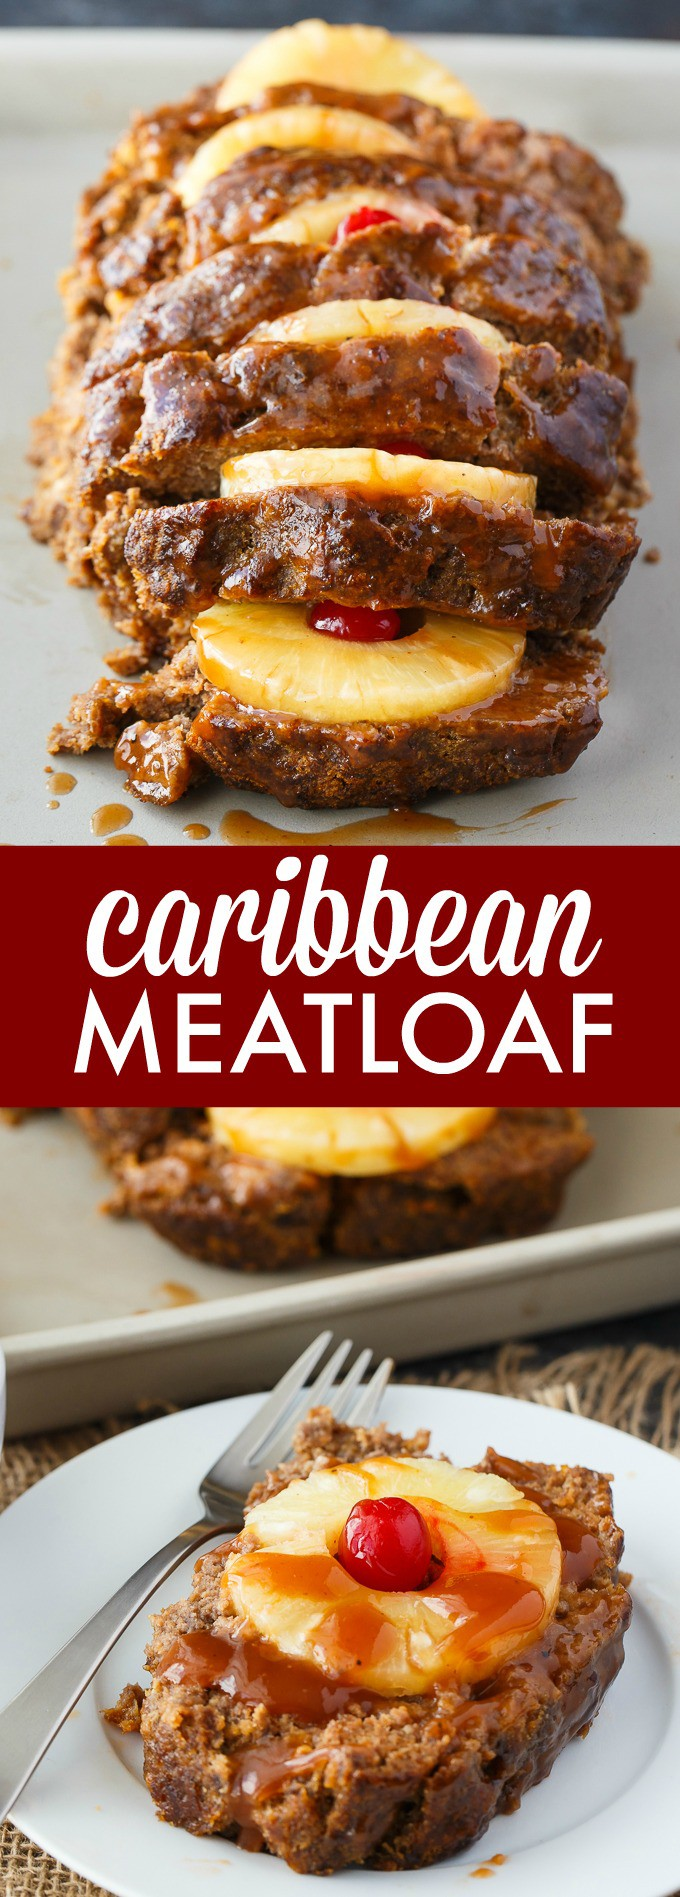 Caribbean Meatloaf - Juicy with a sweet tang! This easy meatloaf recipe is a surefire hit.